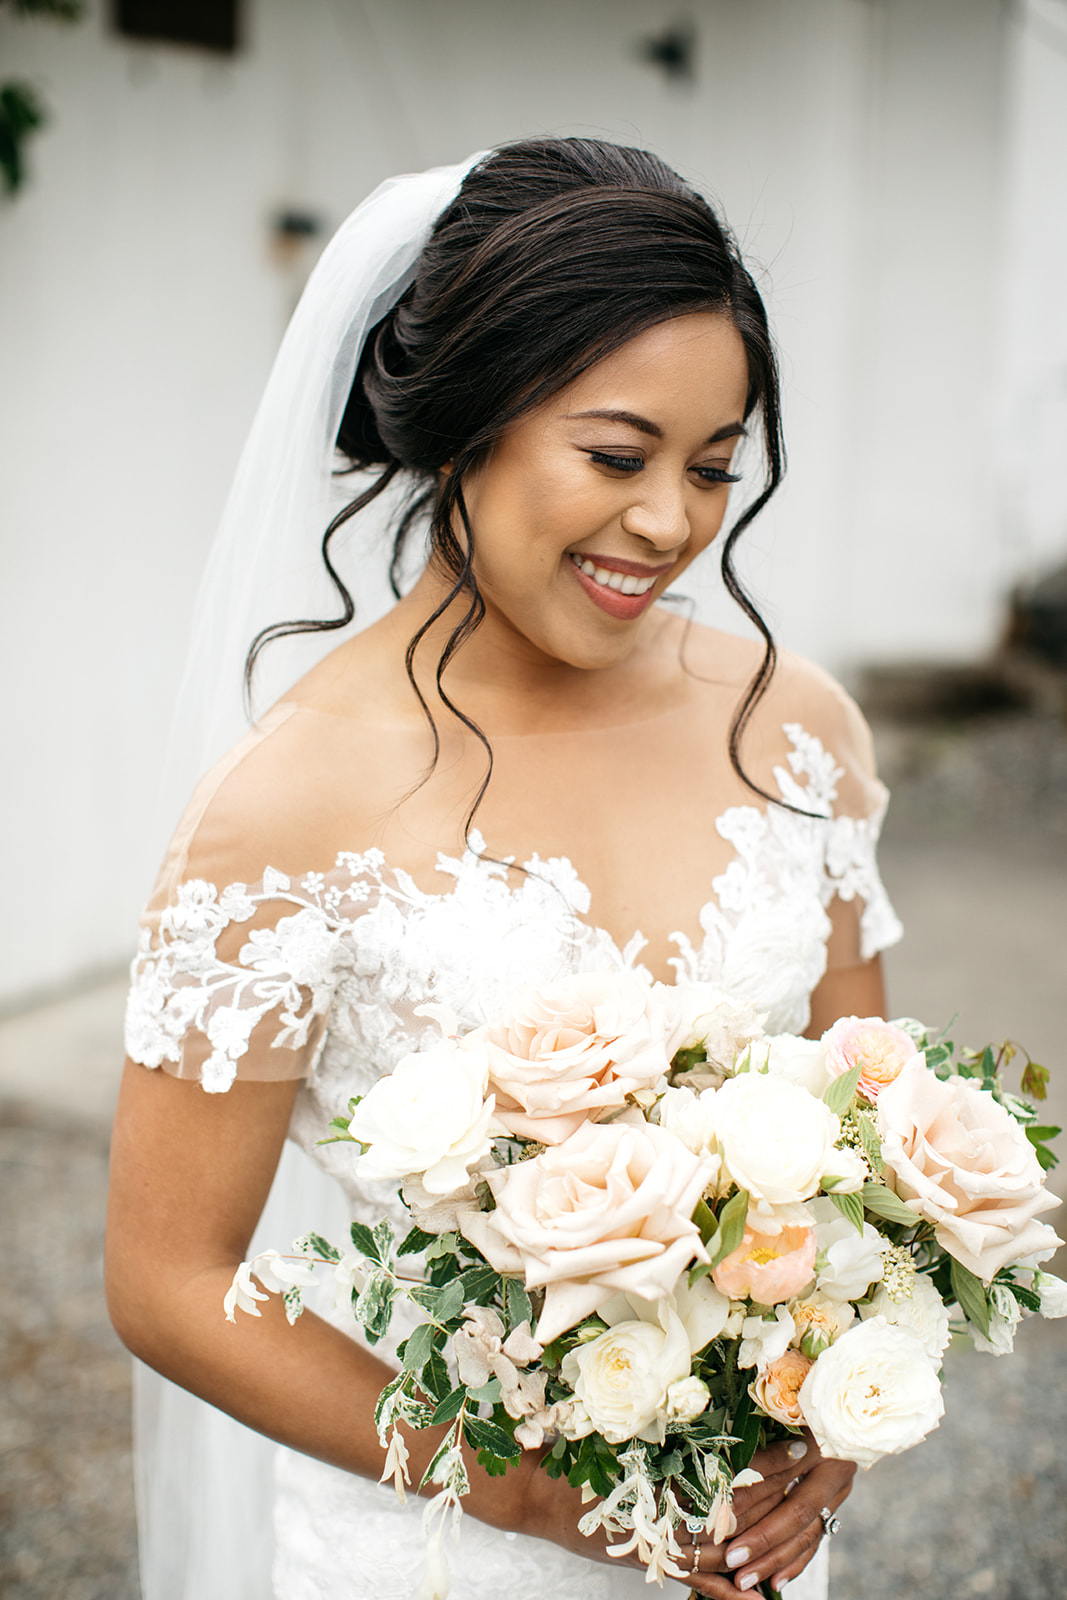 wedding hair and wedding make up - spring bride in a romantic wedding dress - holding a spring floral bouquet - image from www.emmasedition.com